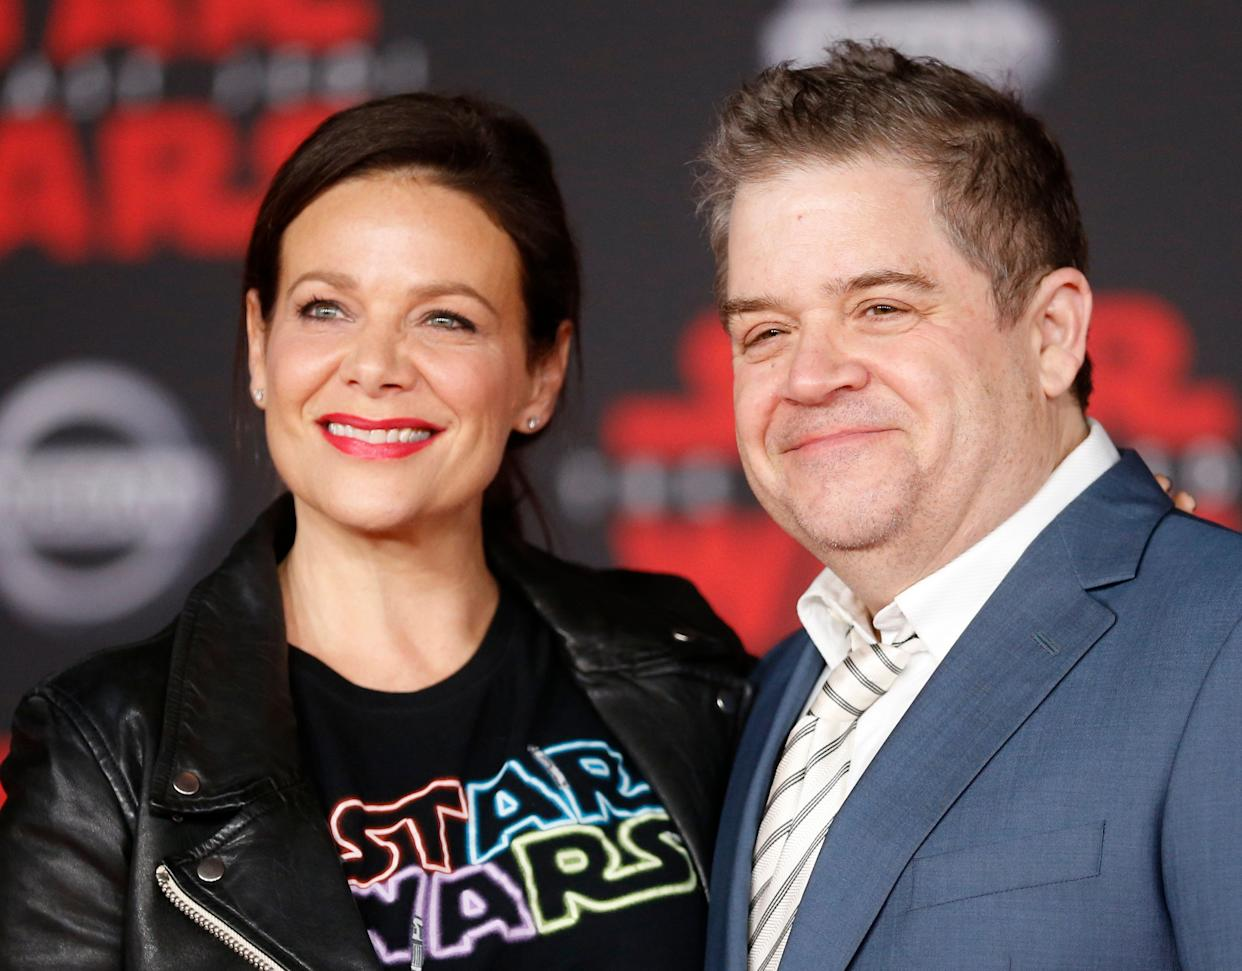 Patton Oswalt and Meredith Salenger, pictured in September, married in November and are now celebrating their first holiday season together.